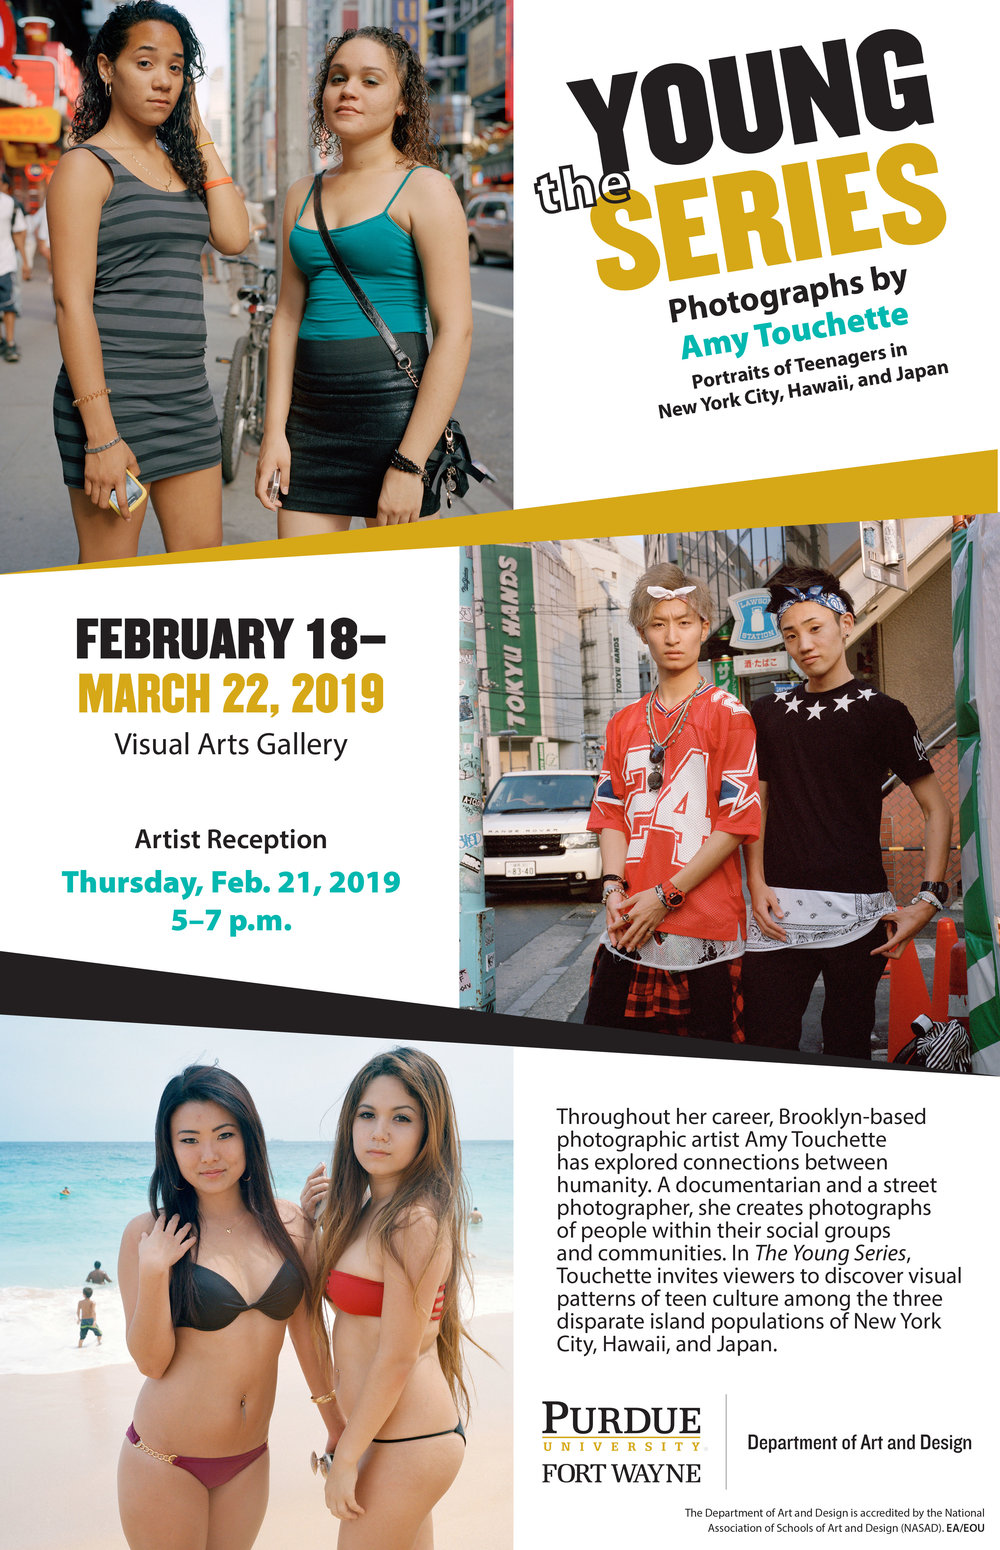 The Young Series,Purdue University Visual Arts Gallery,Fort Wayne, IN - FEBRUARY 18-MARCH 22, 2019 This solo exhibition of Amy's series of teenagers, The Young Series, is a compilation of New York Young, O'ahu Young, and Tokyo Young. Her artist talk is February 21, at 5pm. View the press release.